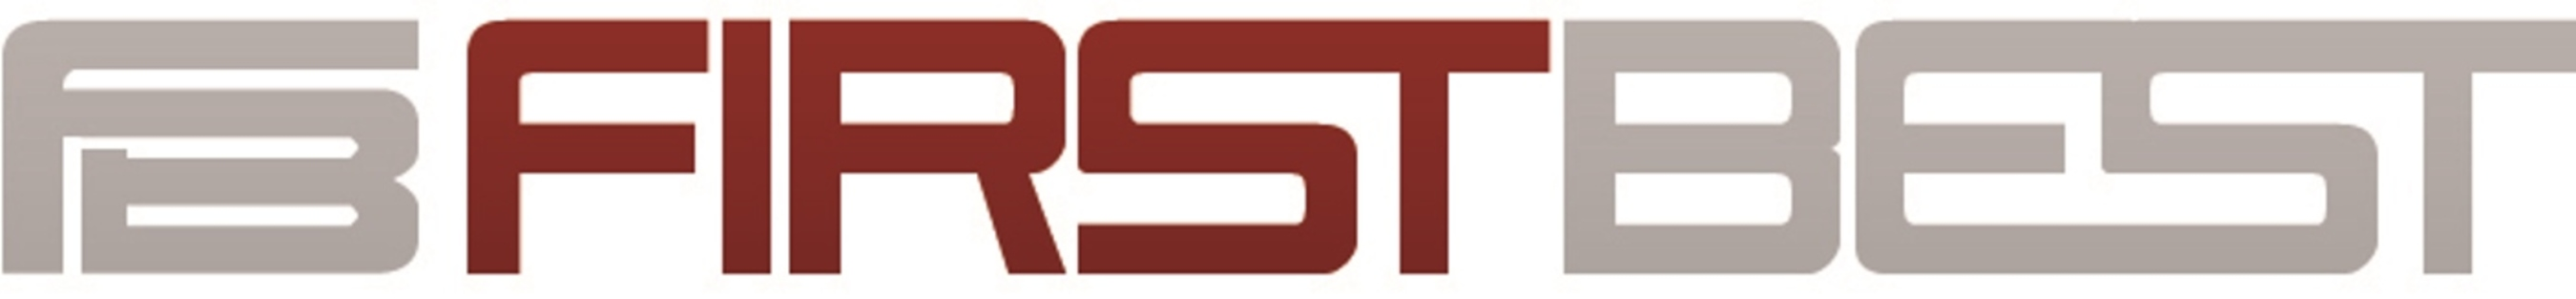 FirstBest(R) Systems, Inc. logo